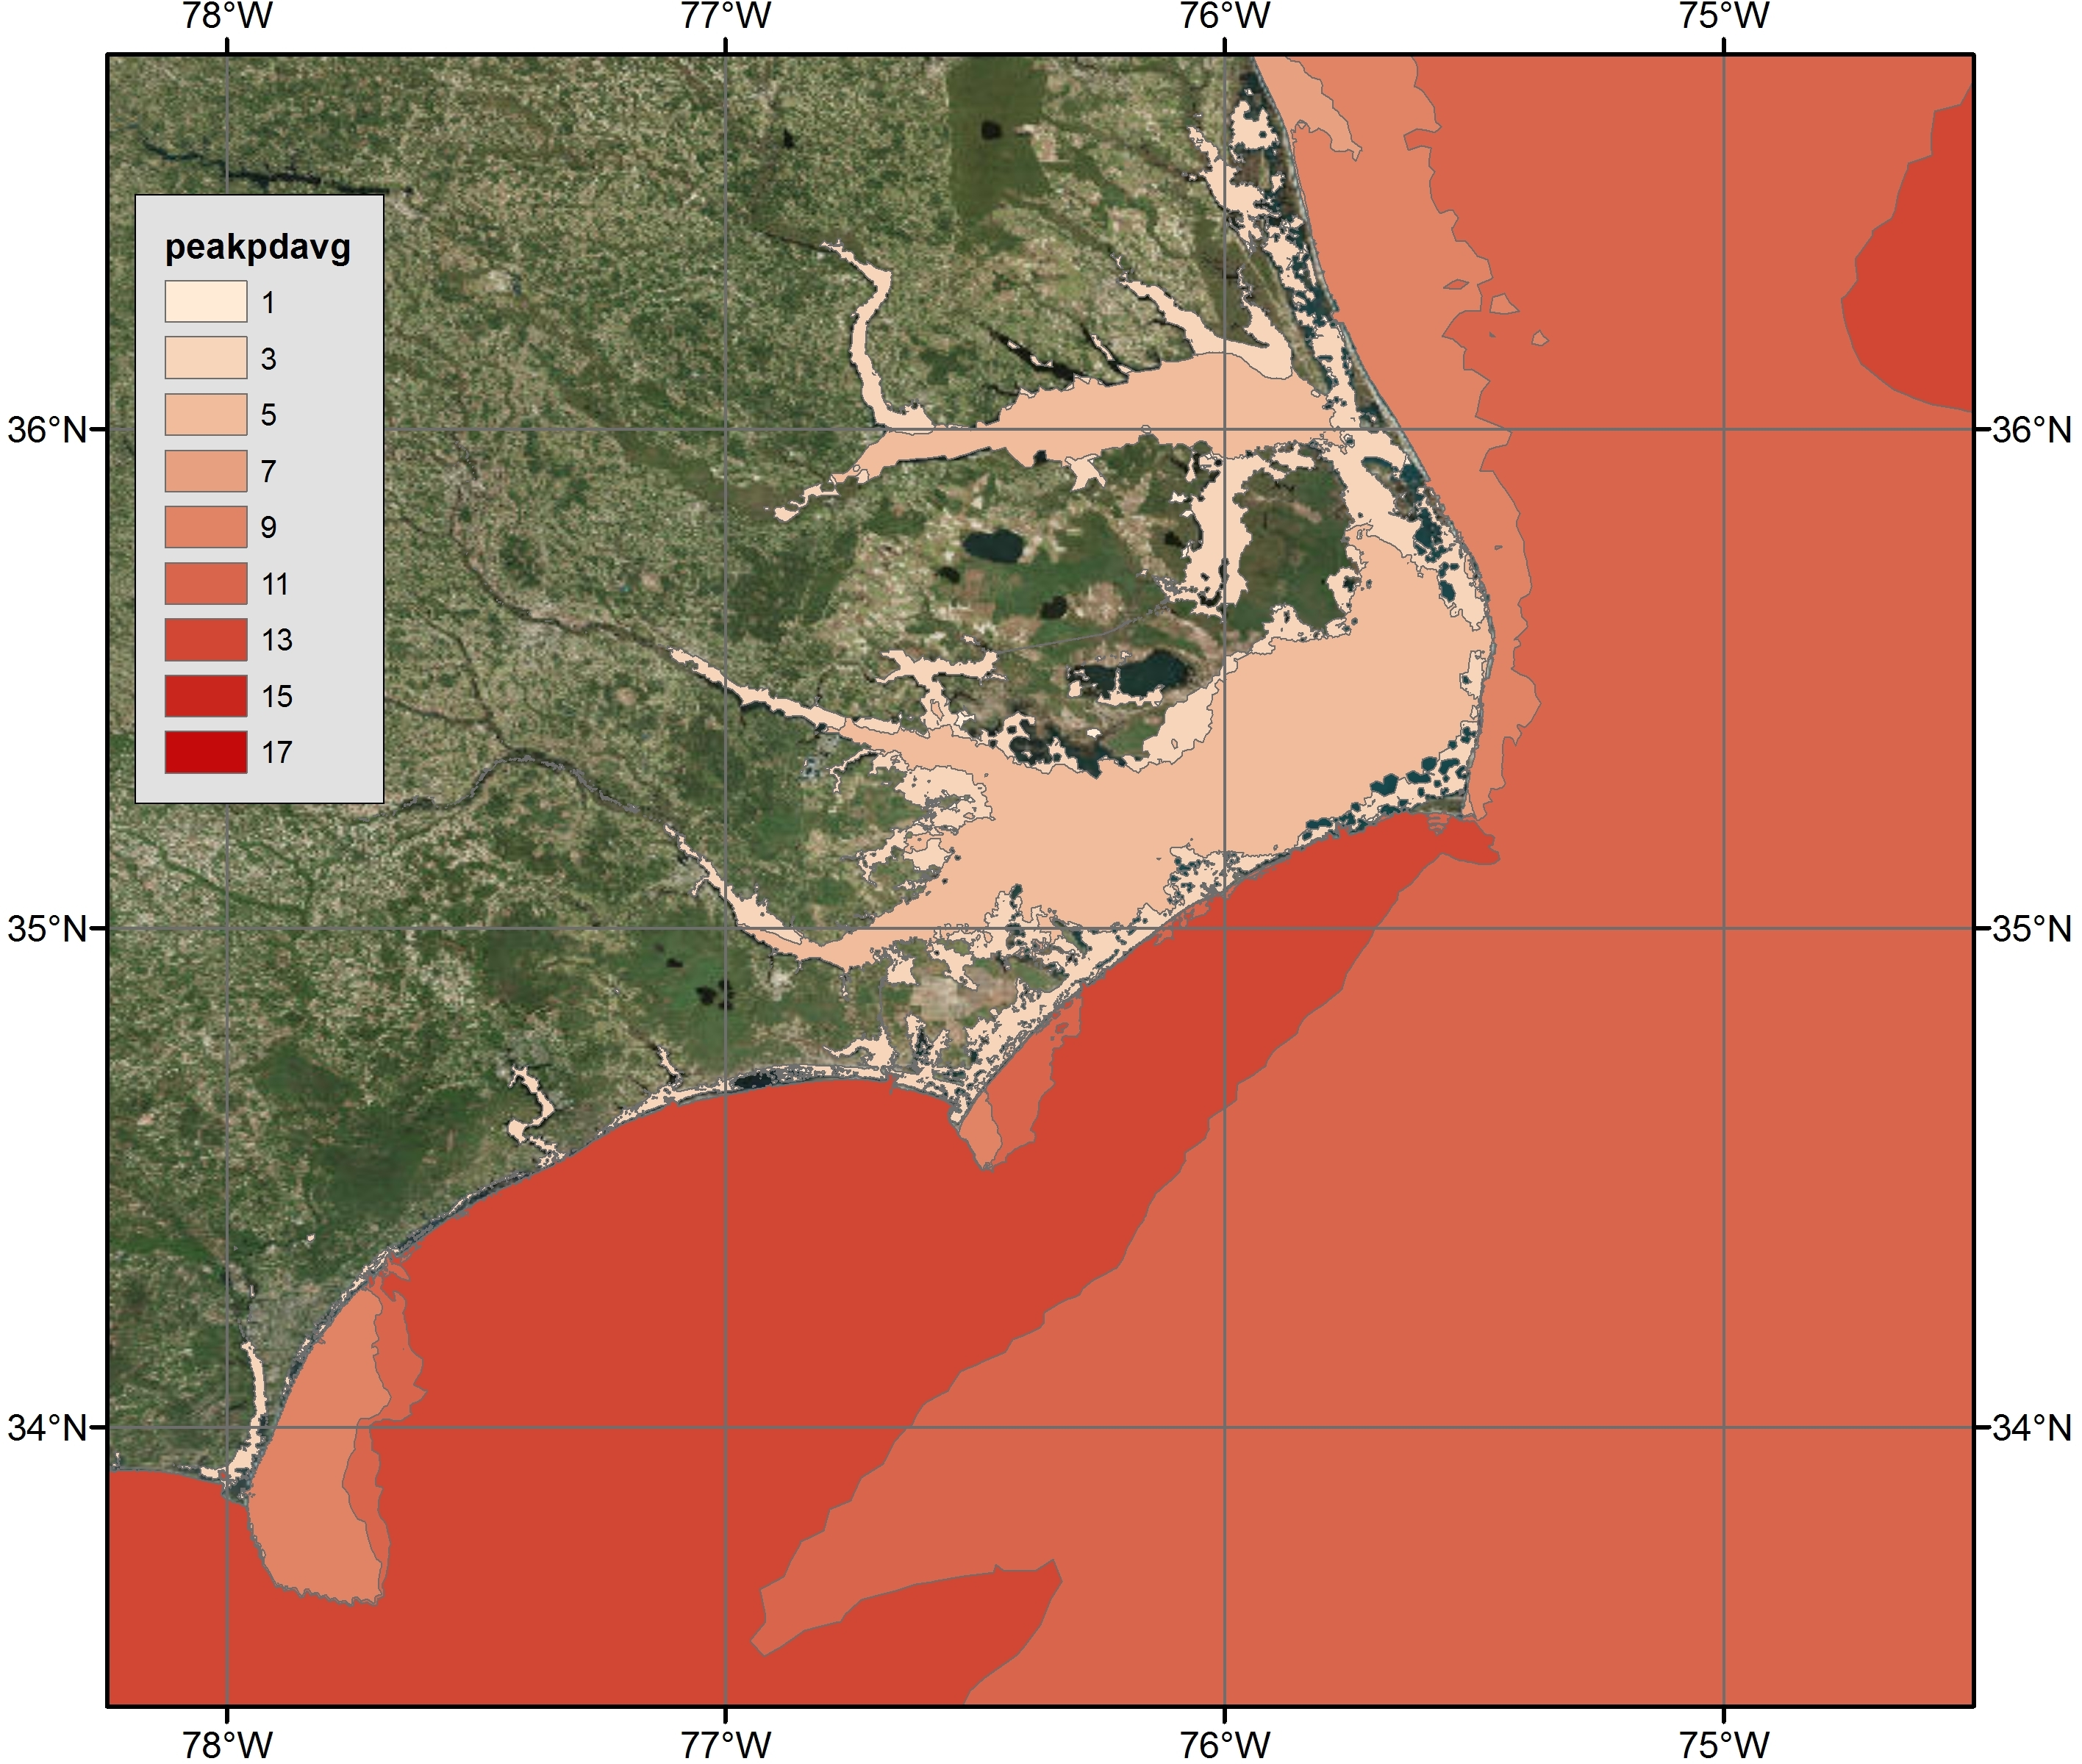 Example 4b: Maximum Peak Wave Periods (s) along the NC coast during Hurricane Arthur Advisory 12 visualized via polygon shapefiles with ArcGIS satellite imagery